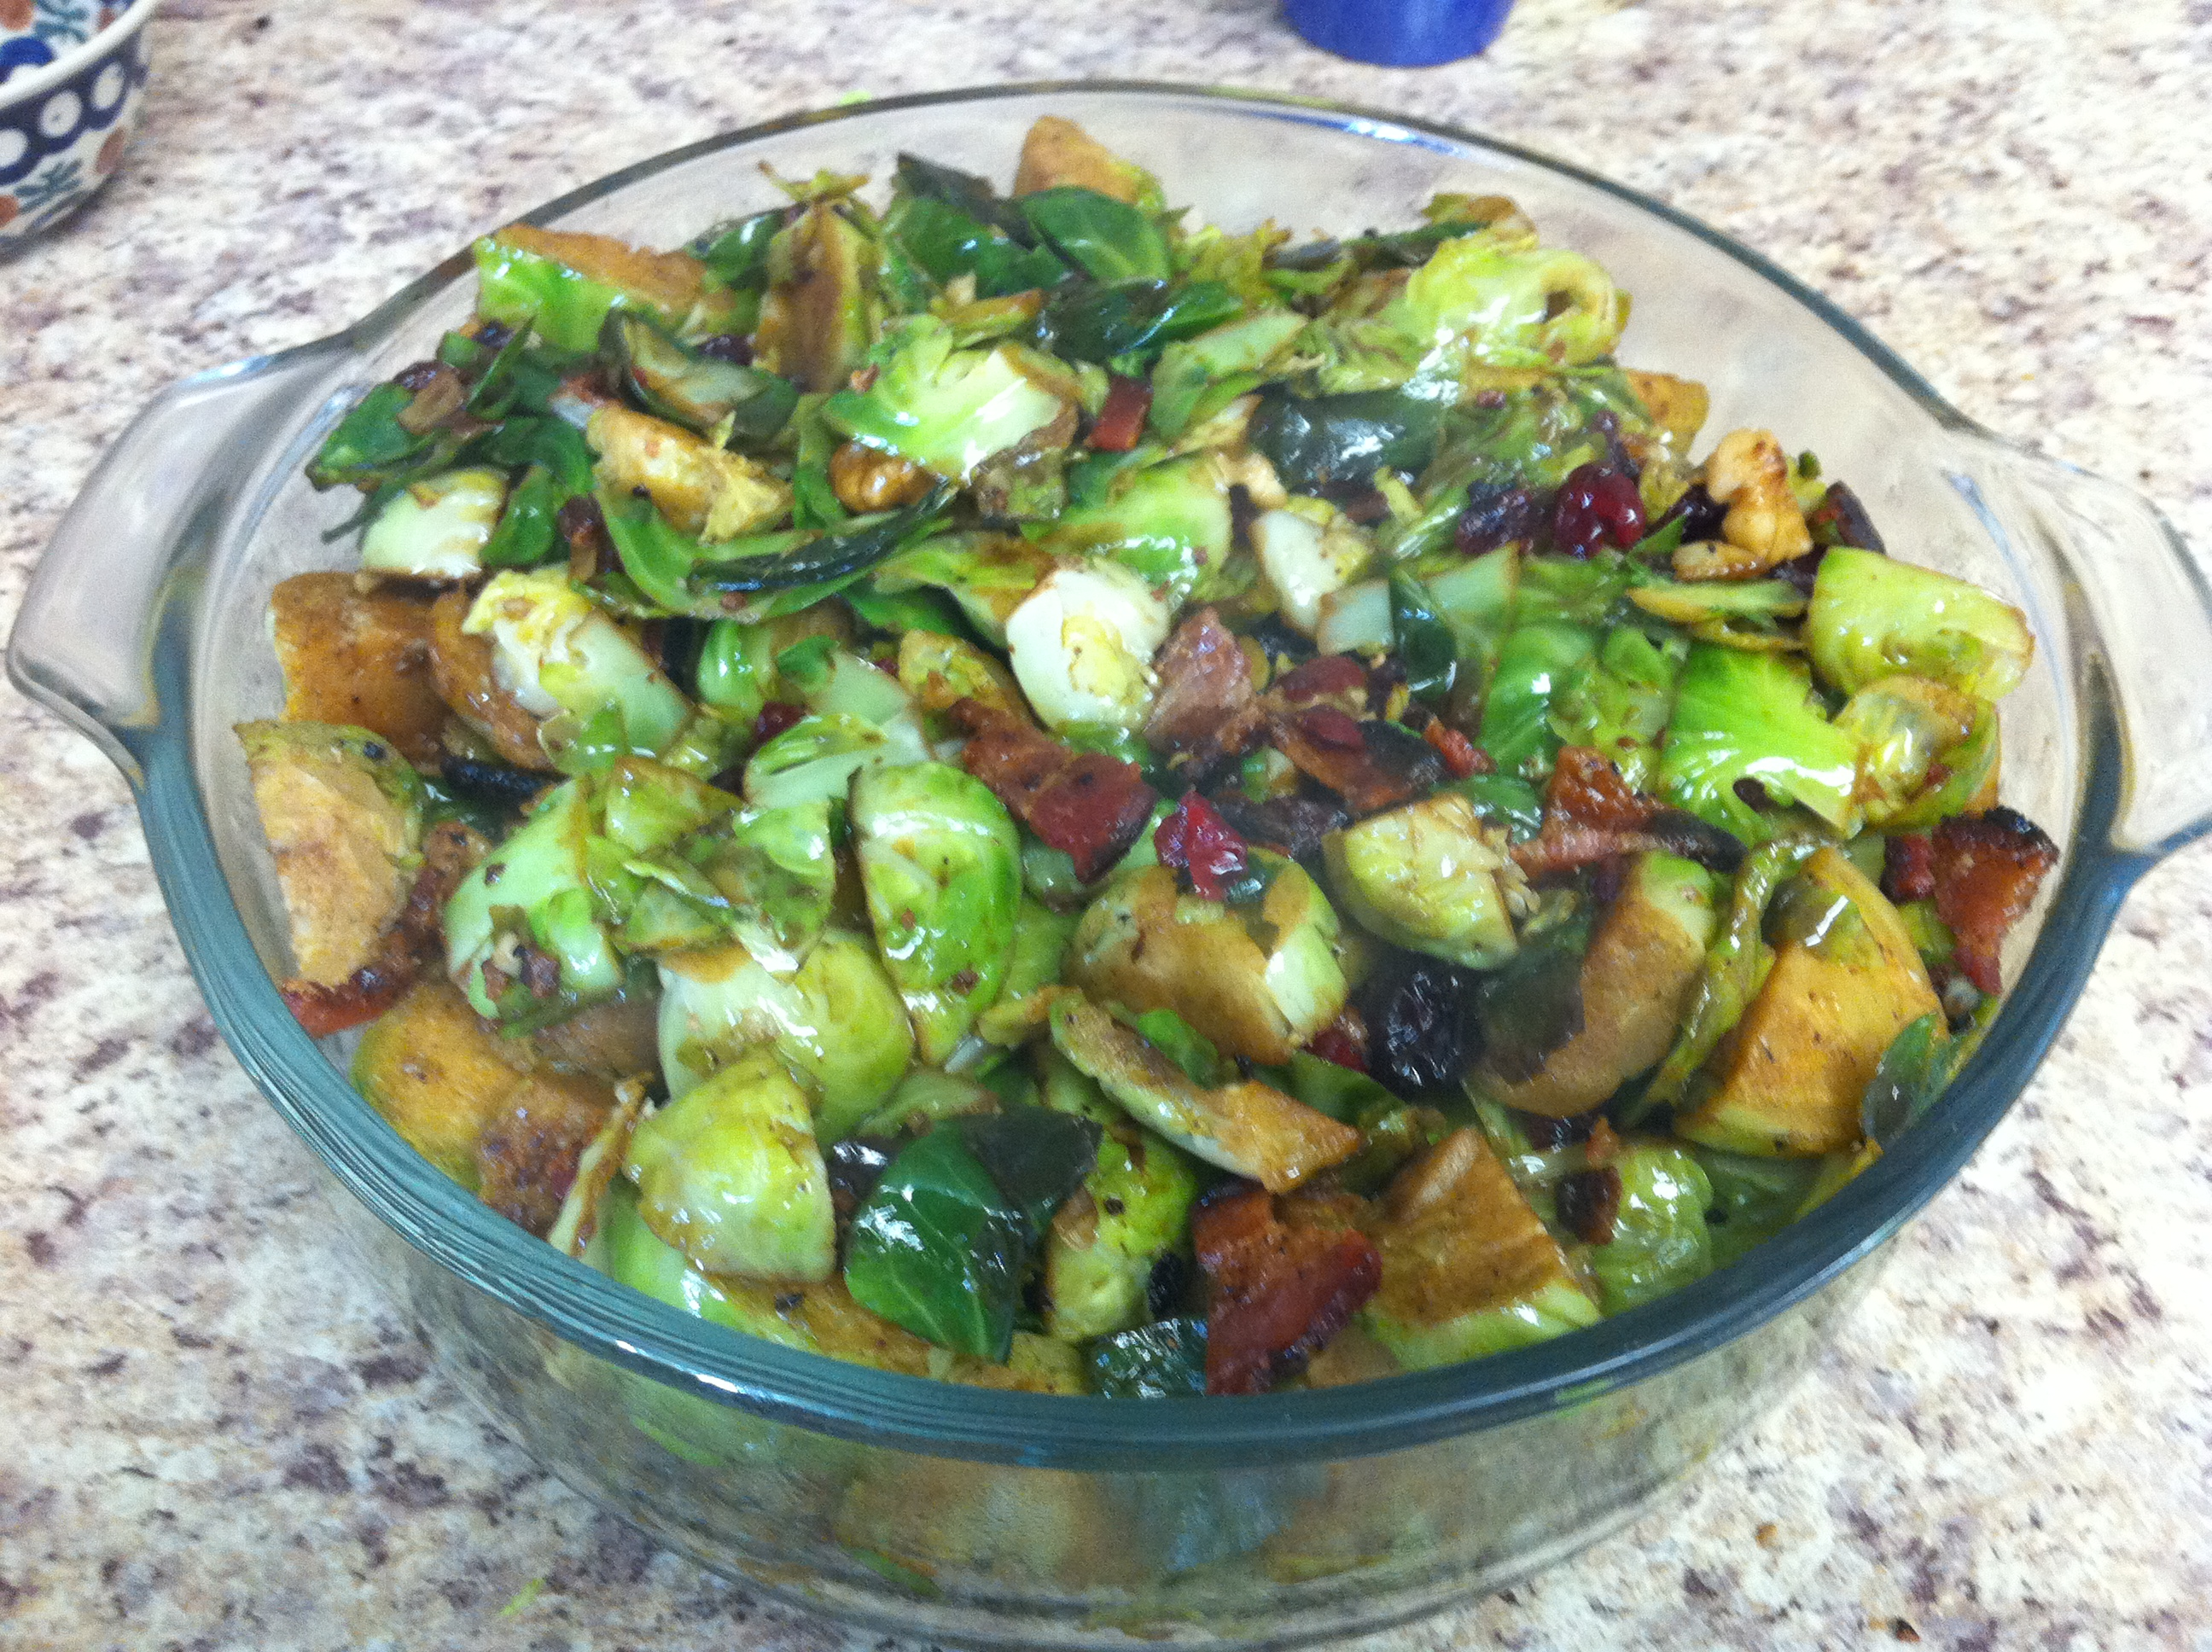 Primalgirl Cooks: Paleo Holiday Brussel Sprouts